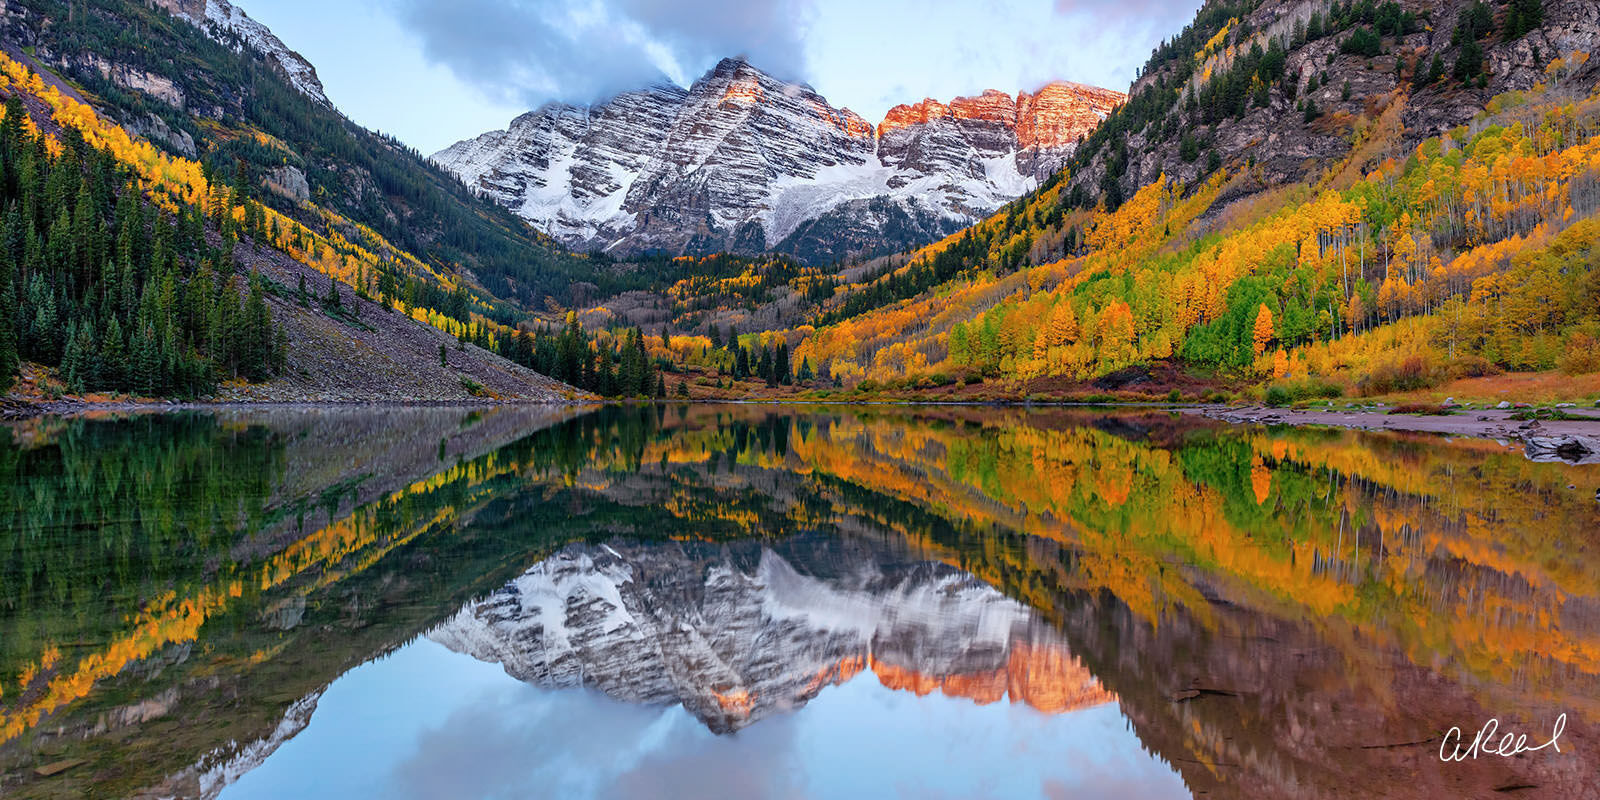 Transform your space with Aaron Reed's luxury fine art photography print, Glorious, from his Panoramic Wall Art collection. Order...